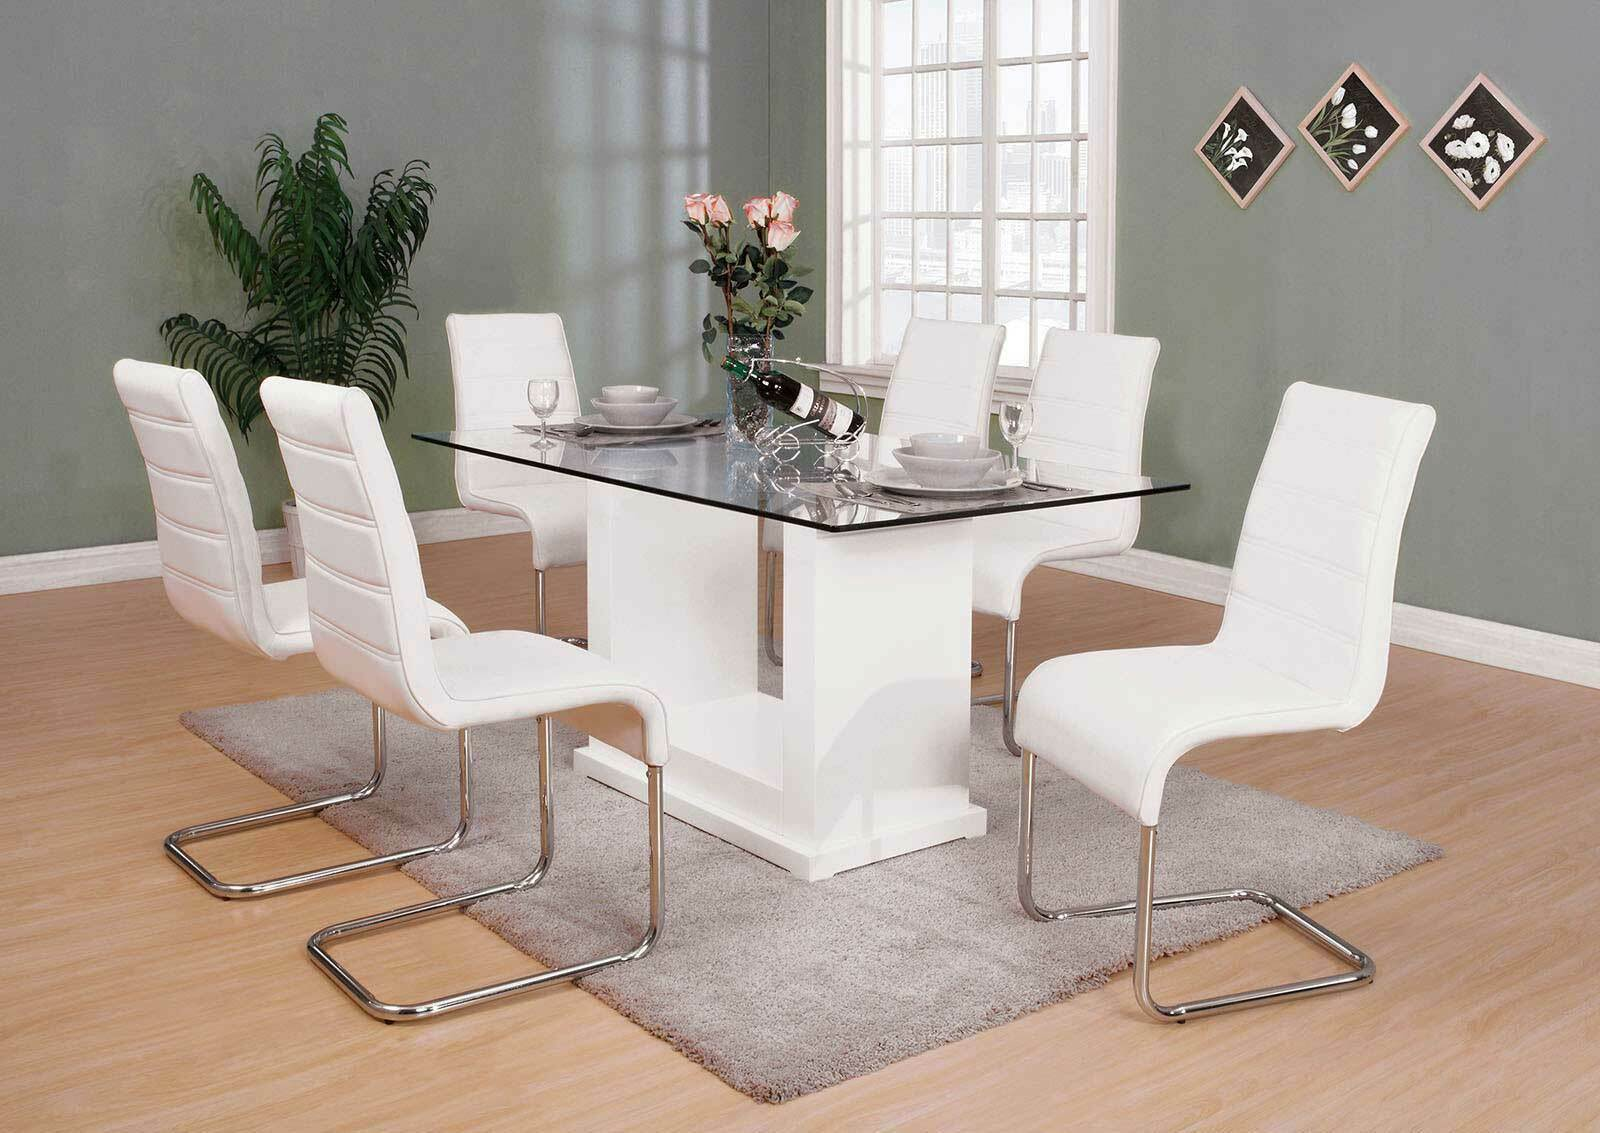 Modern 7 Piece Dining Room Set Furniture Glossy White Rect Table 6 Chairs Icei For Sale Online